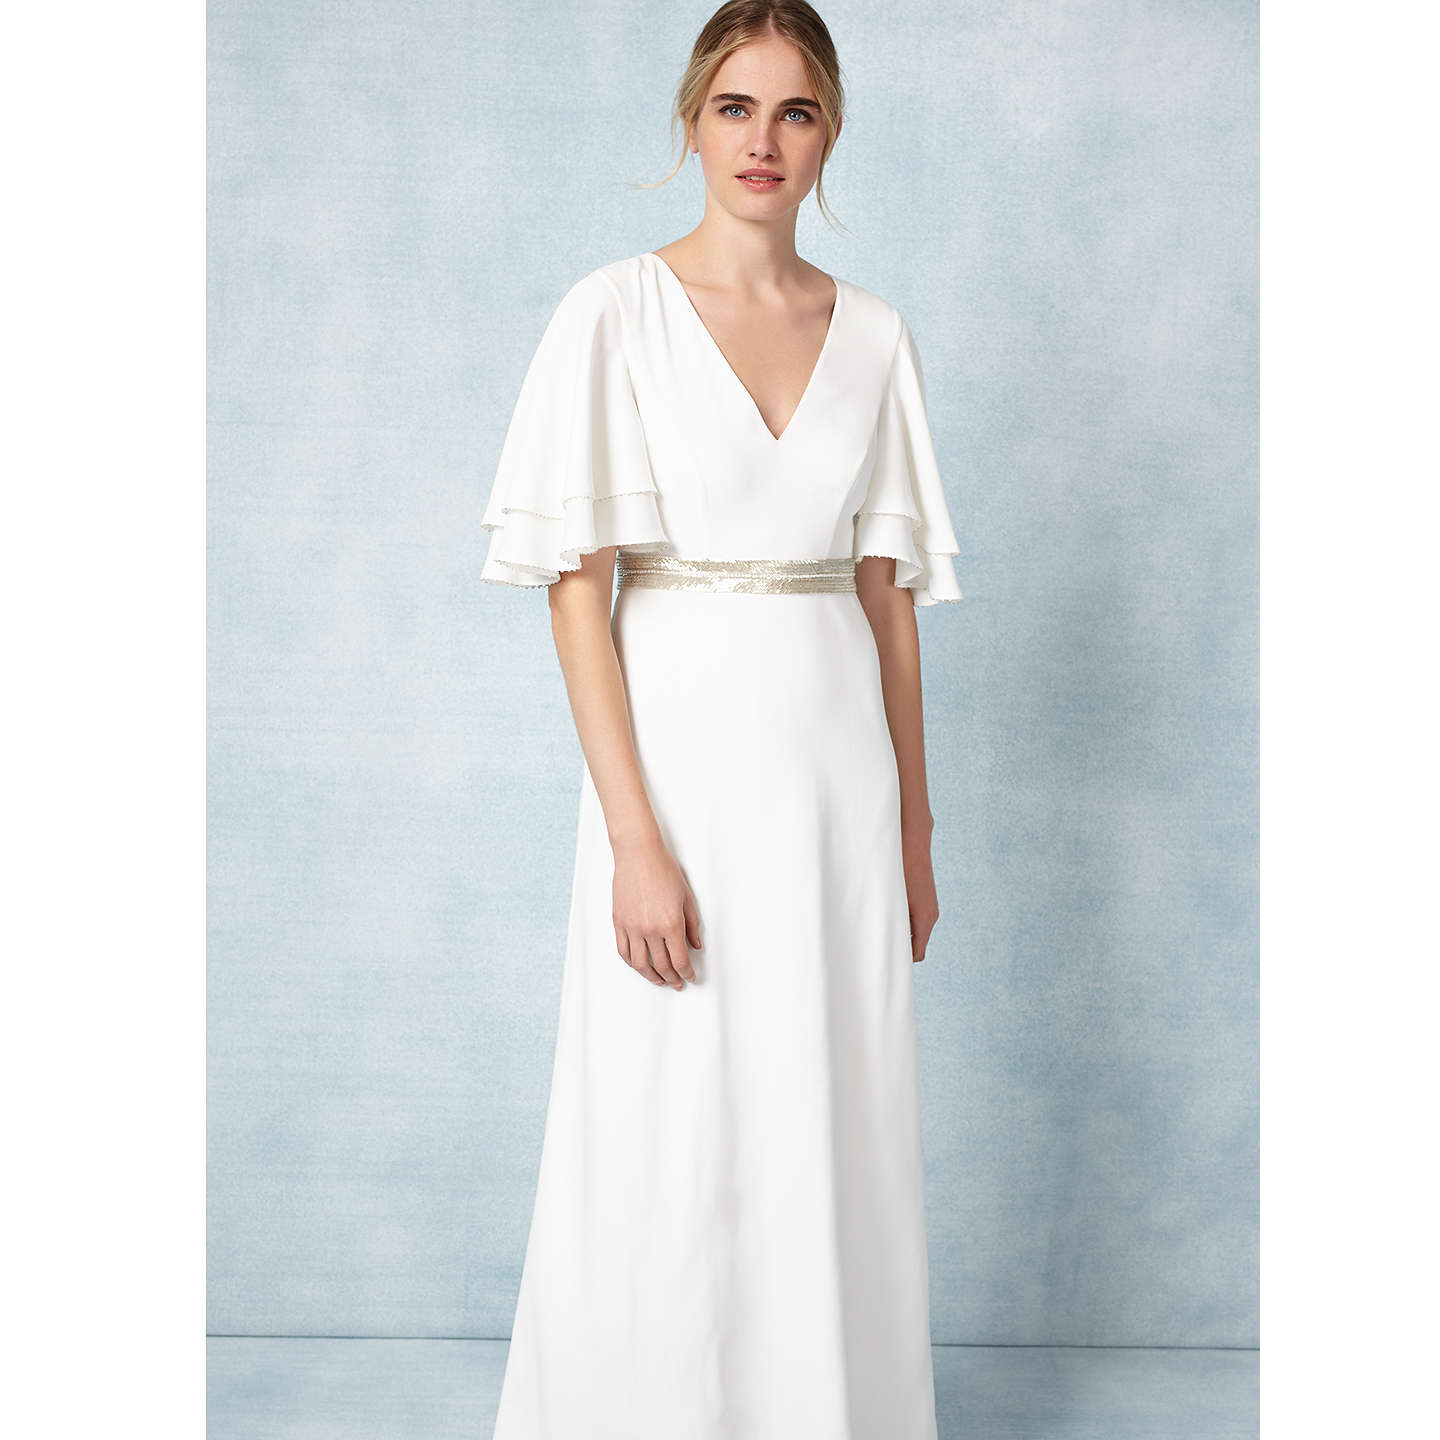 Phase Eight Bridal Chelsie Wedding Dress, Ivory at John Lewis